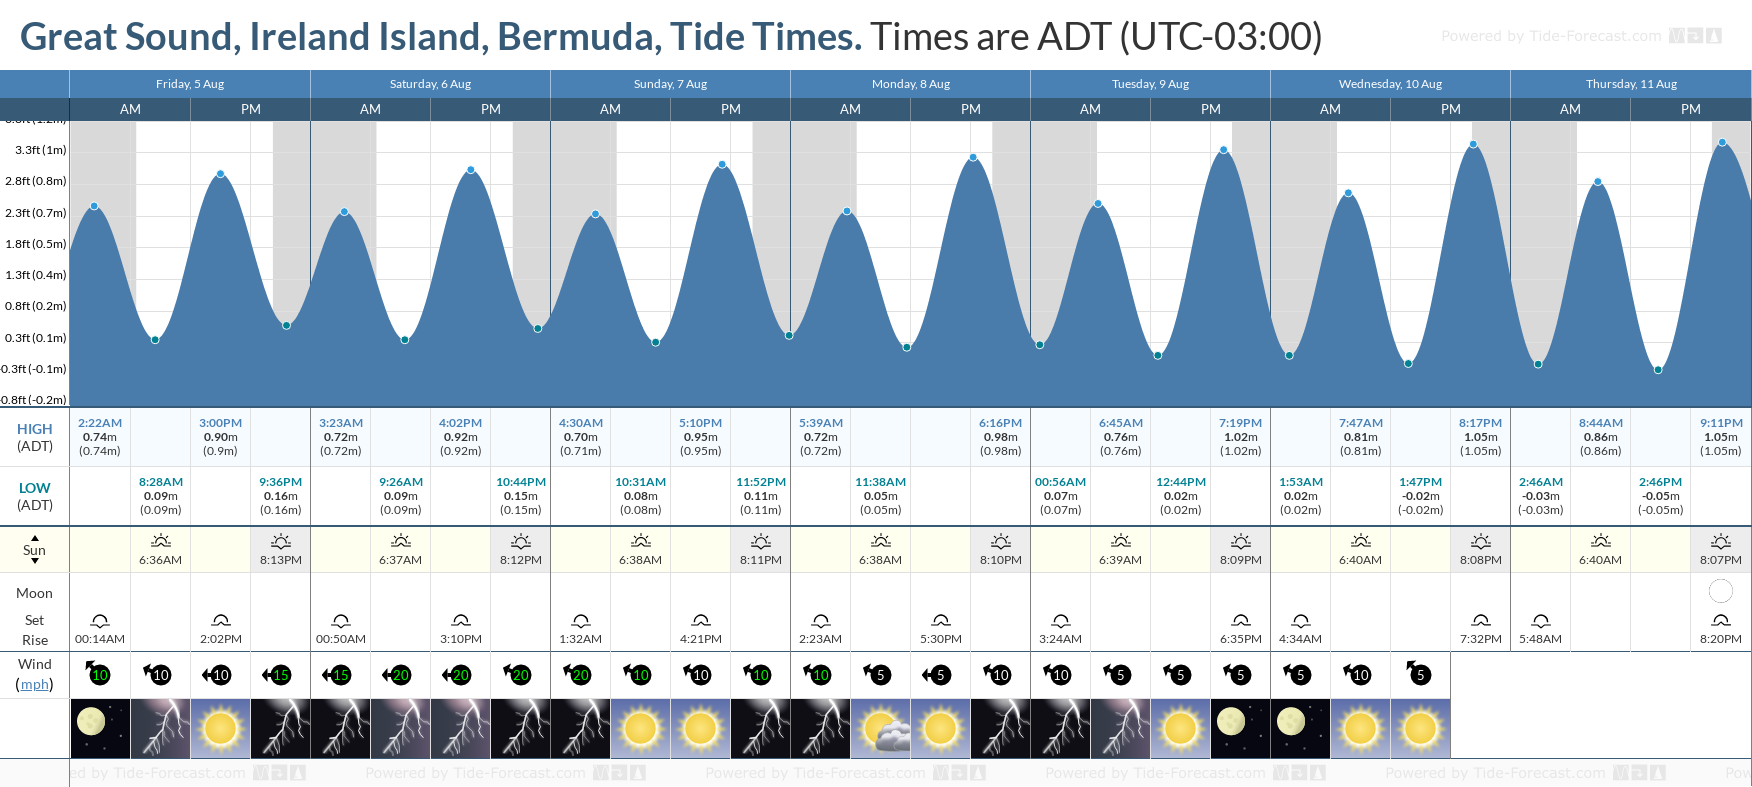 Great Sound, Ireland Island, Bermuda Tide Chart including high and low tide tide times for the next 7 days